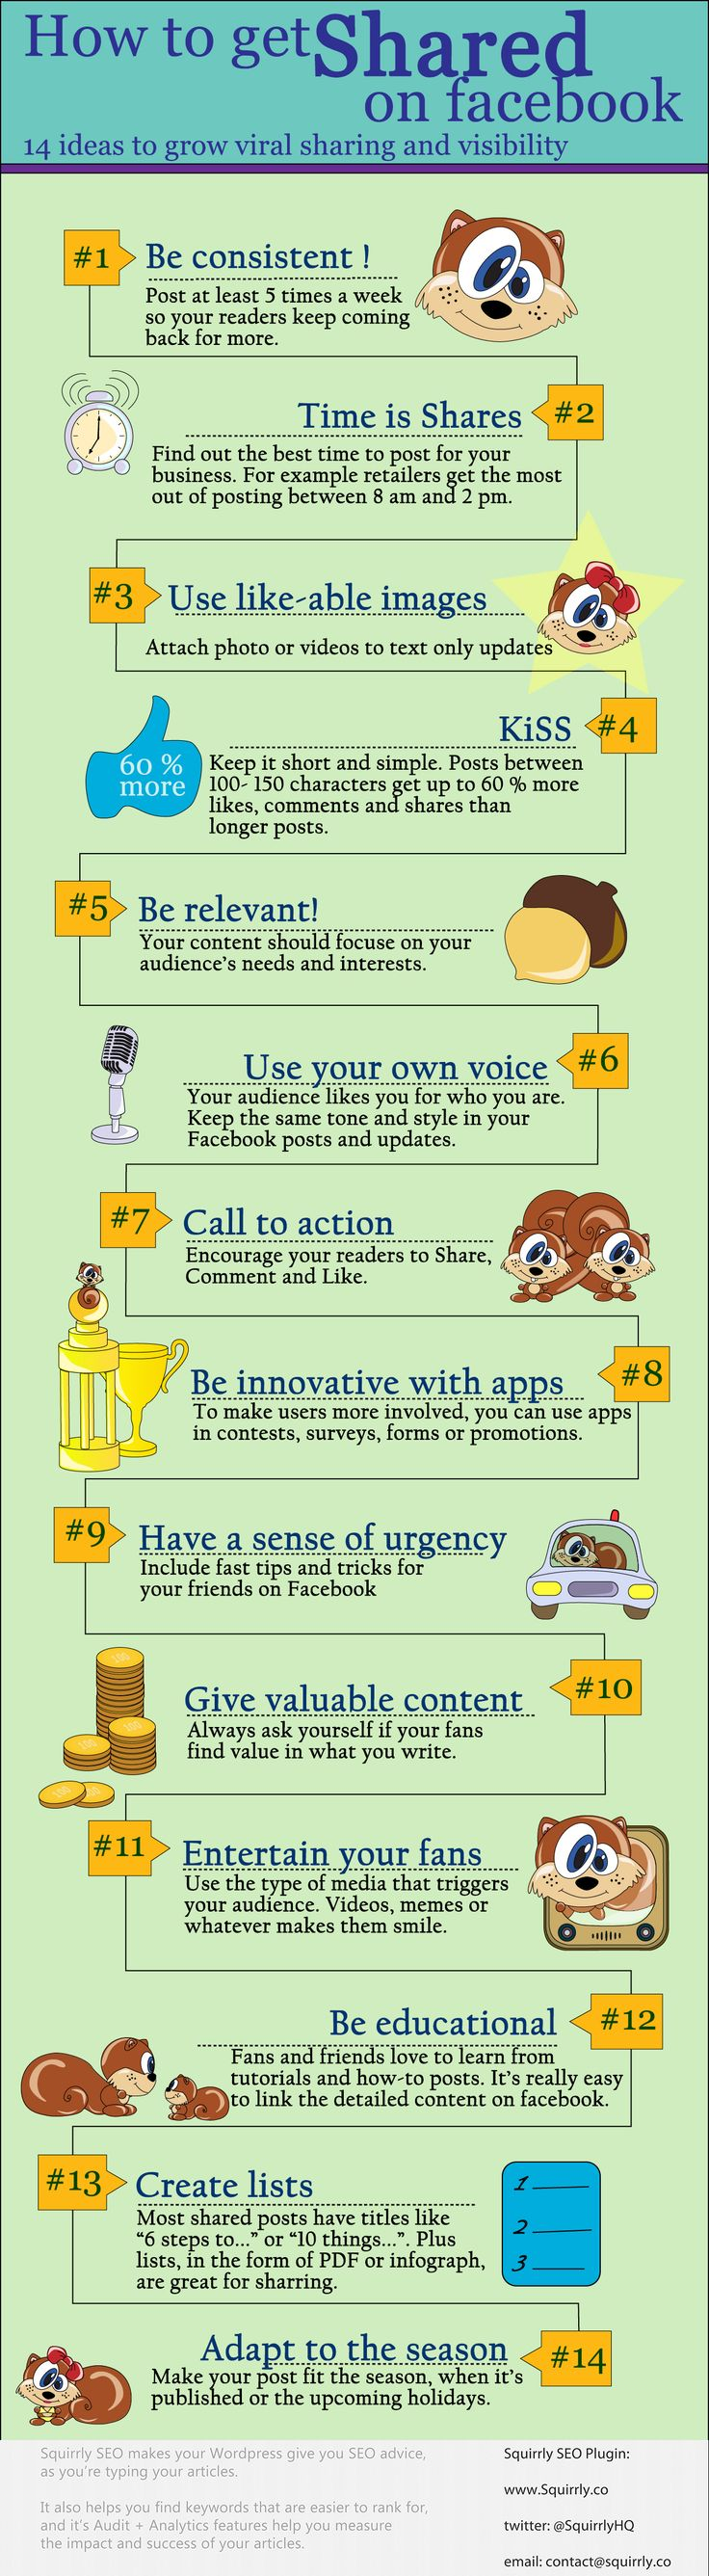 How to get Shared on Facebook #Infographics — Lightscap3s.com